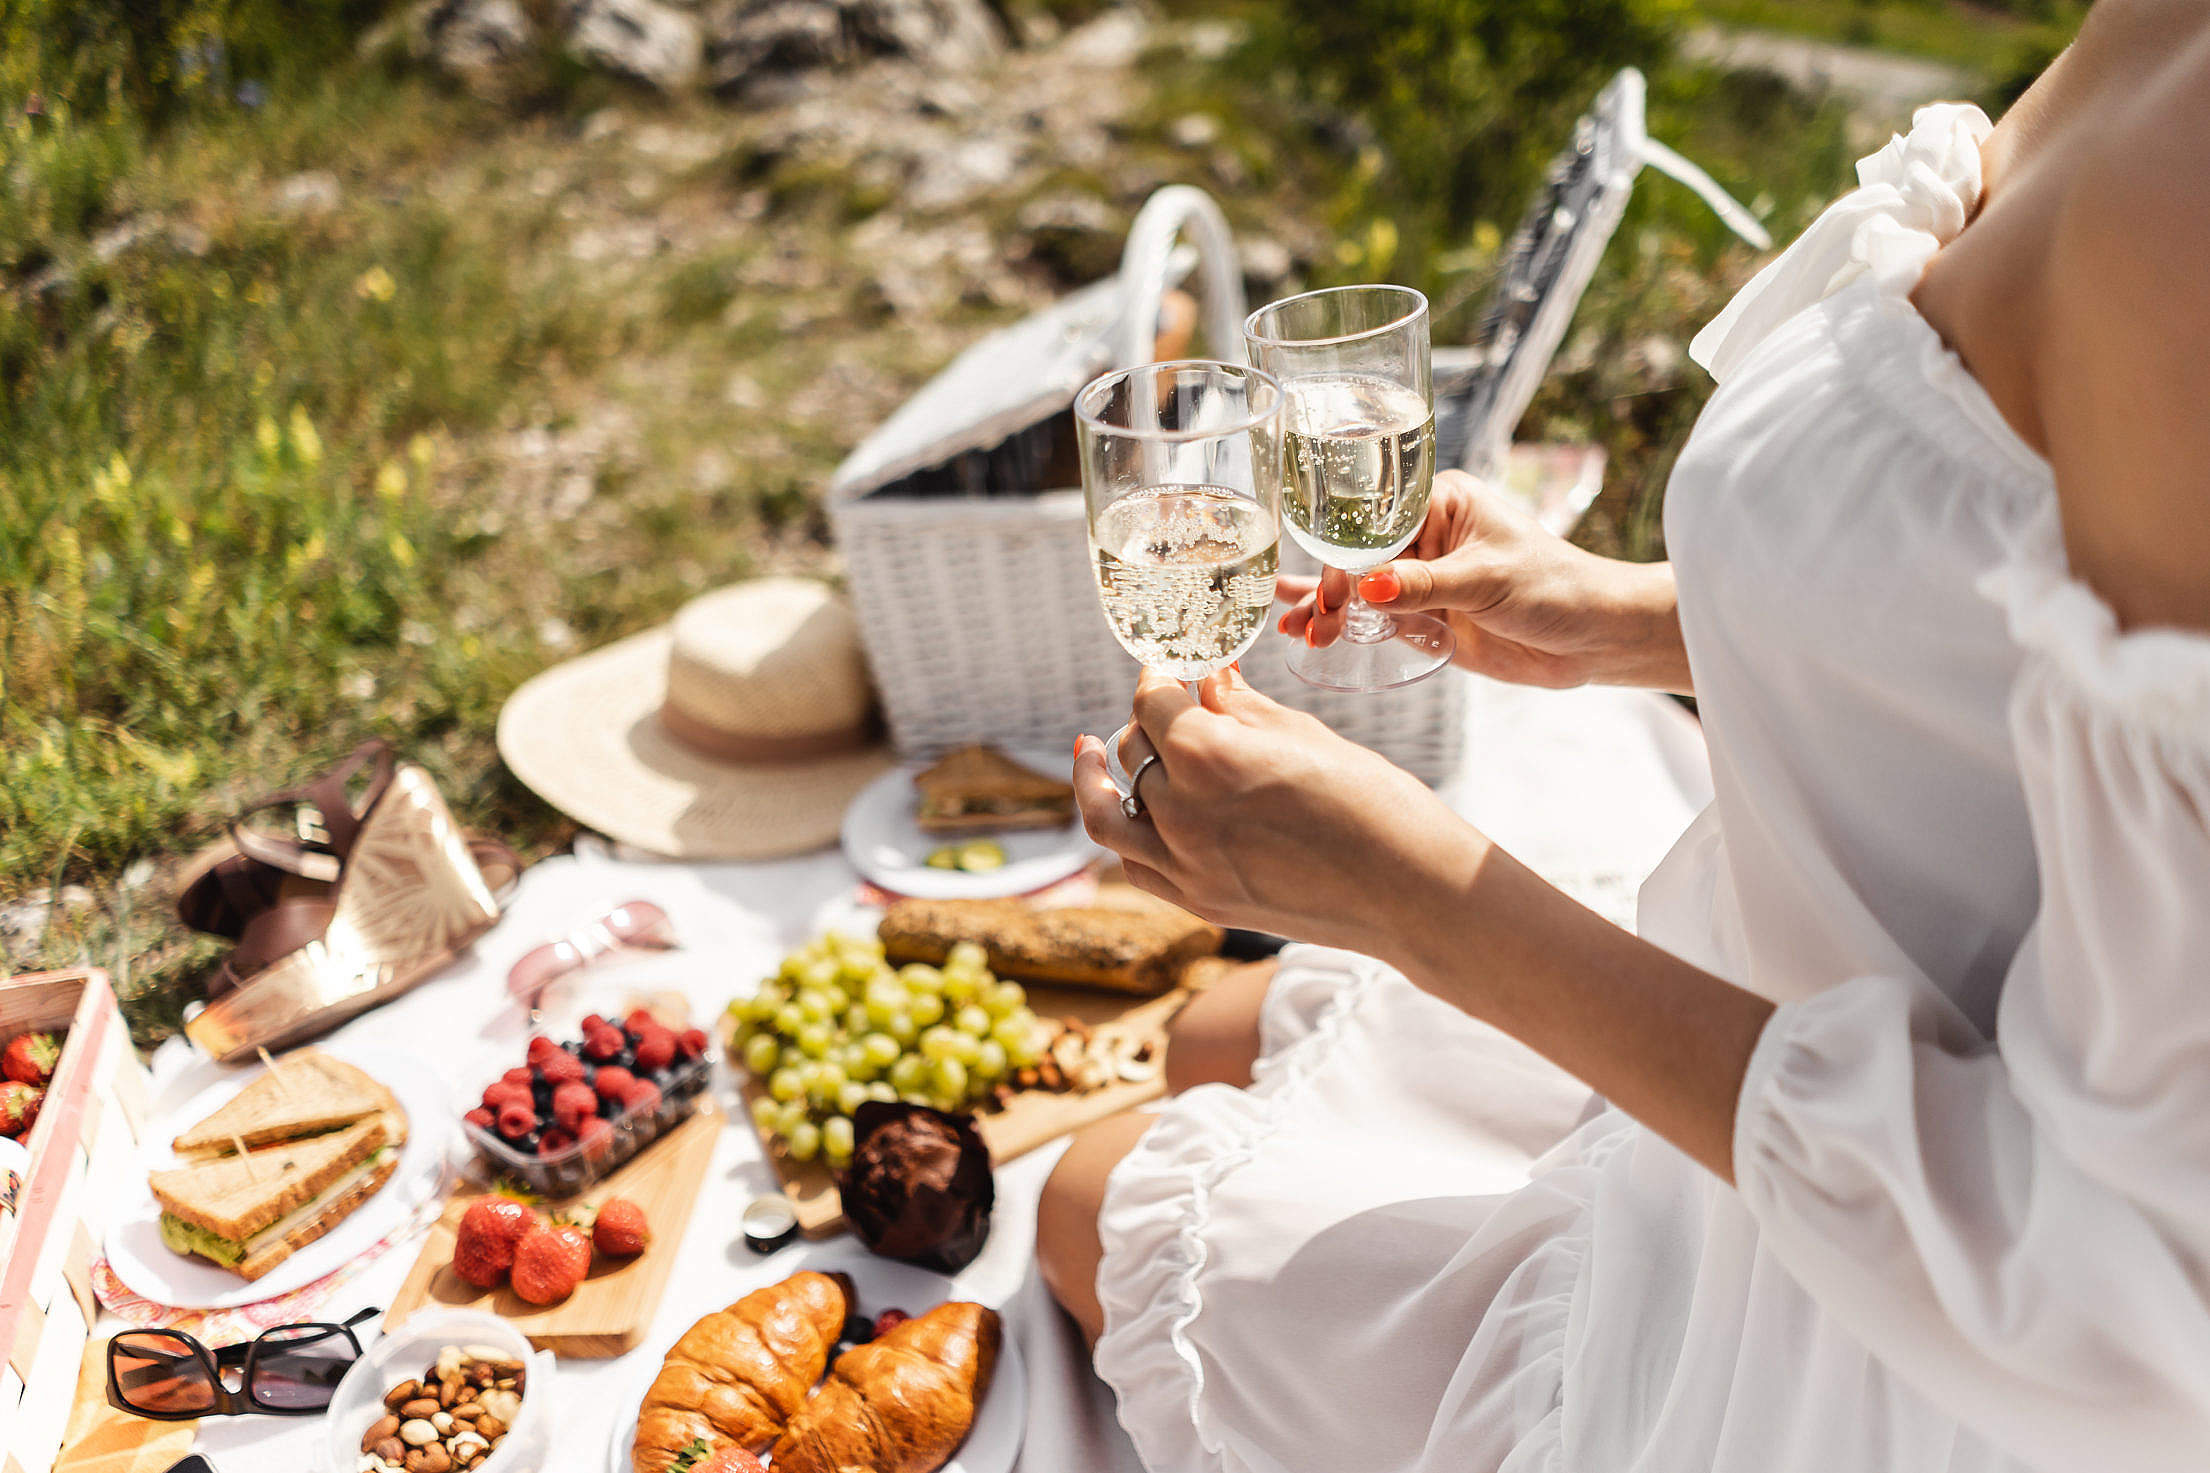 Toast at a Picnic Free Stock Photo